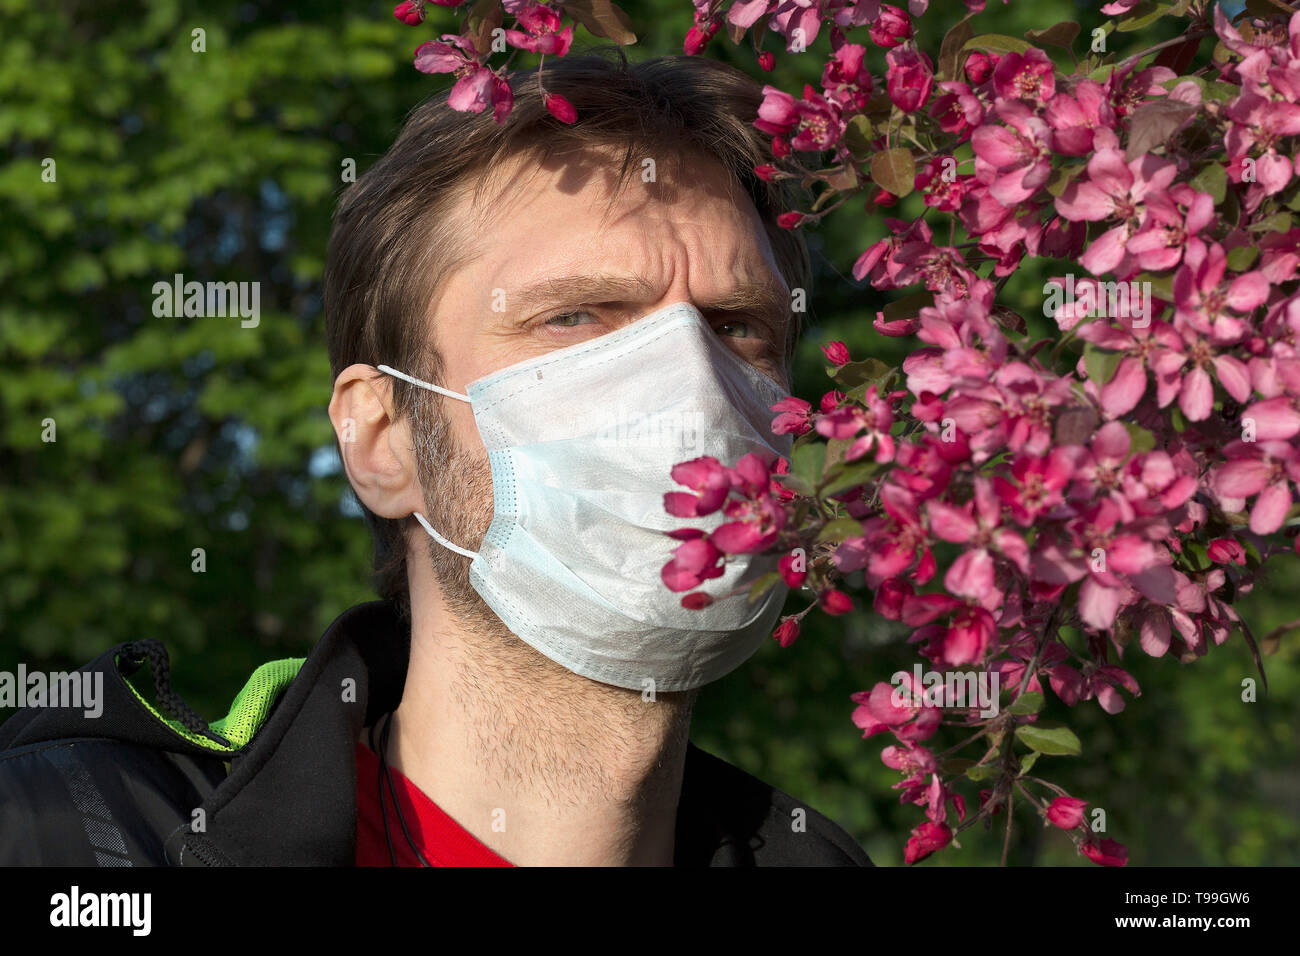 Man wearing a medical mask. Seasonal allergic reaction to pollen - Stock Image